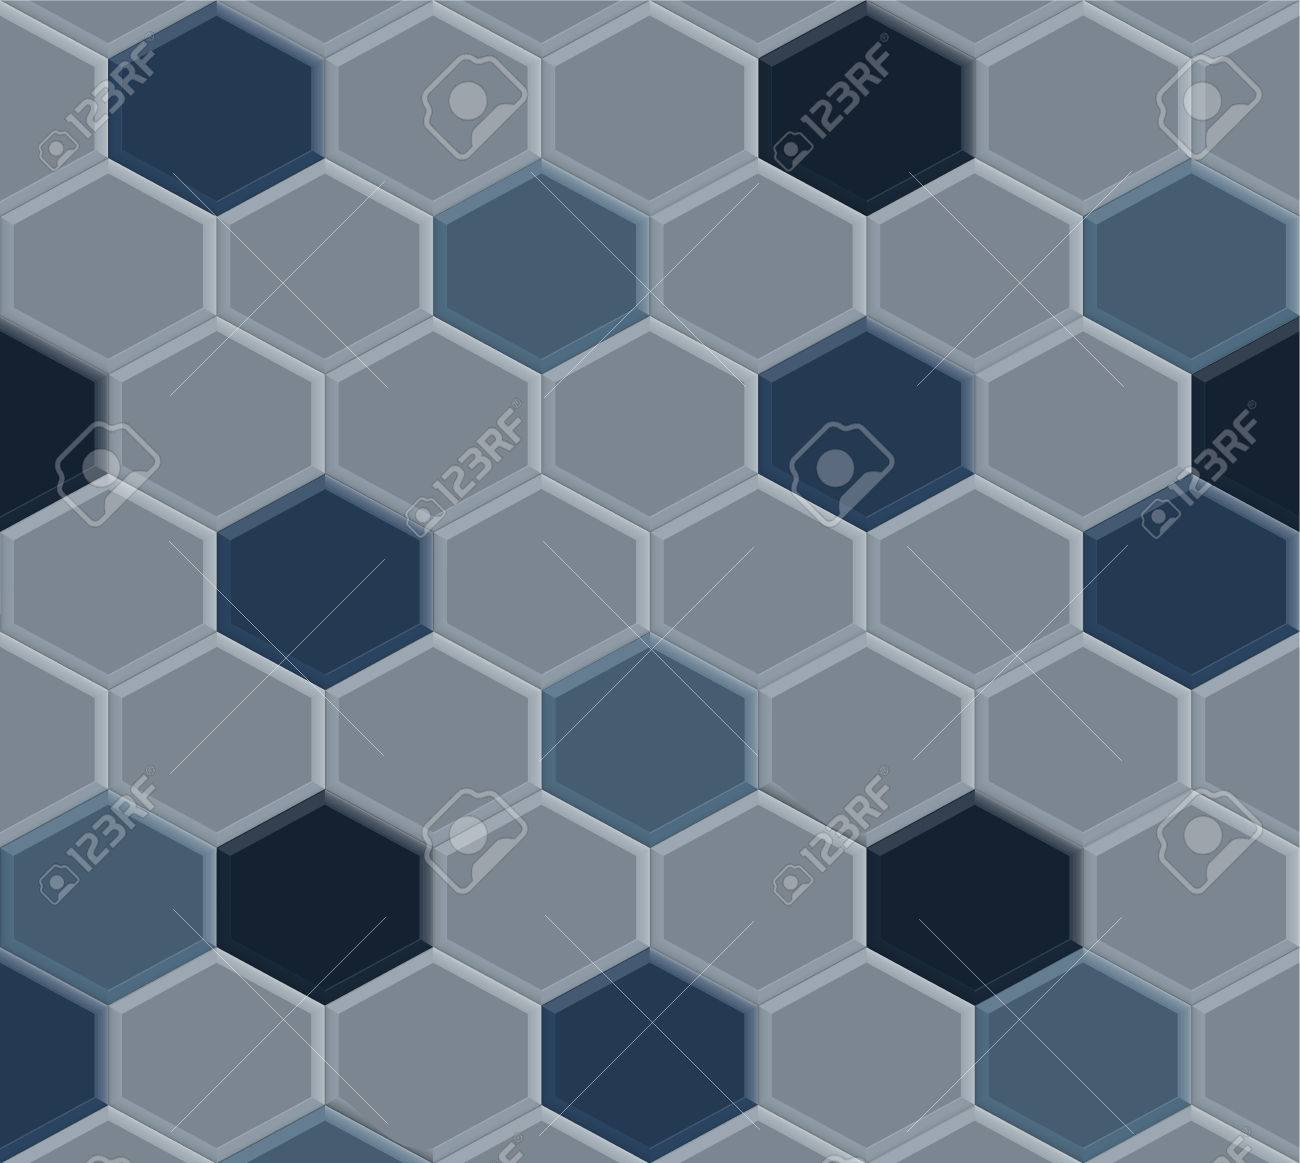 Old Style Of Hexagon Blue Pavement Tile Pattern Background ...